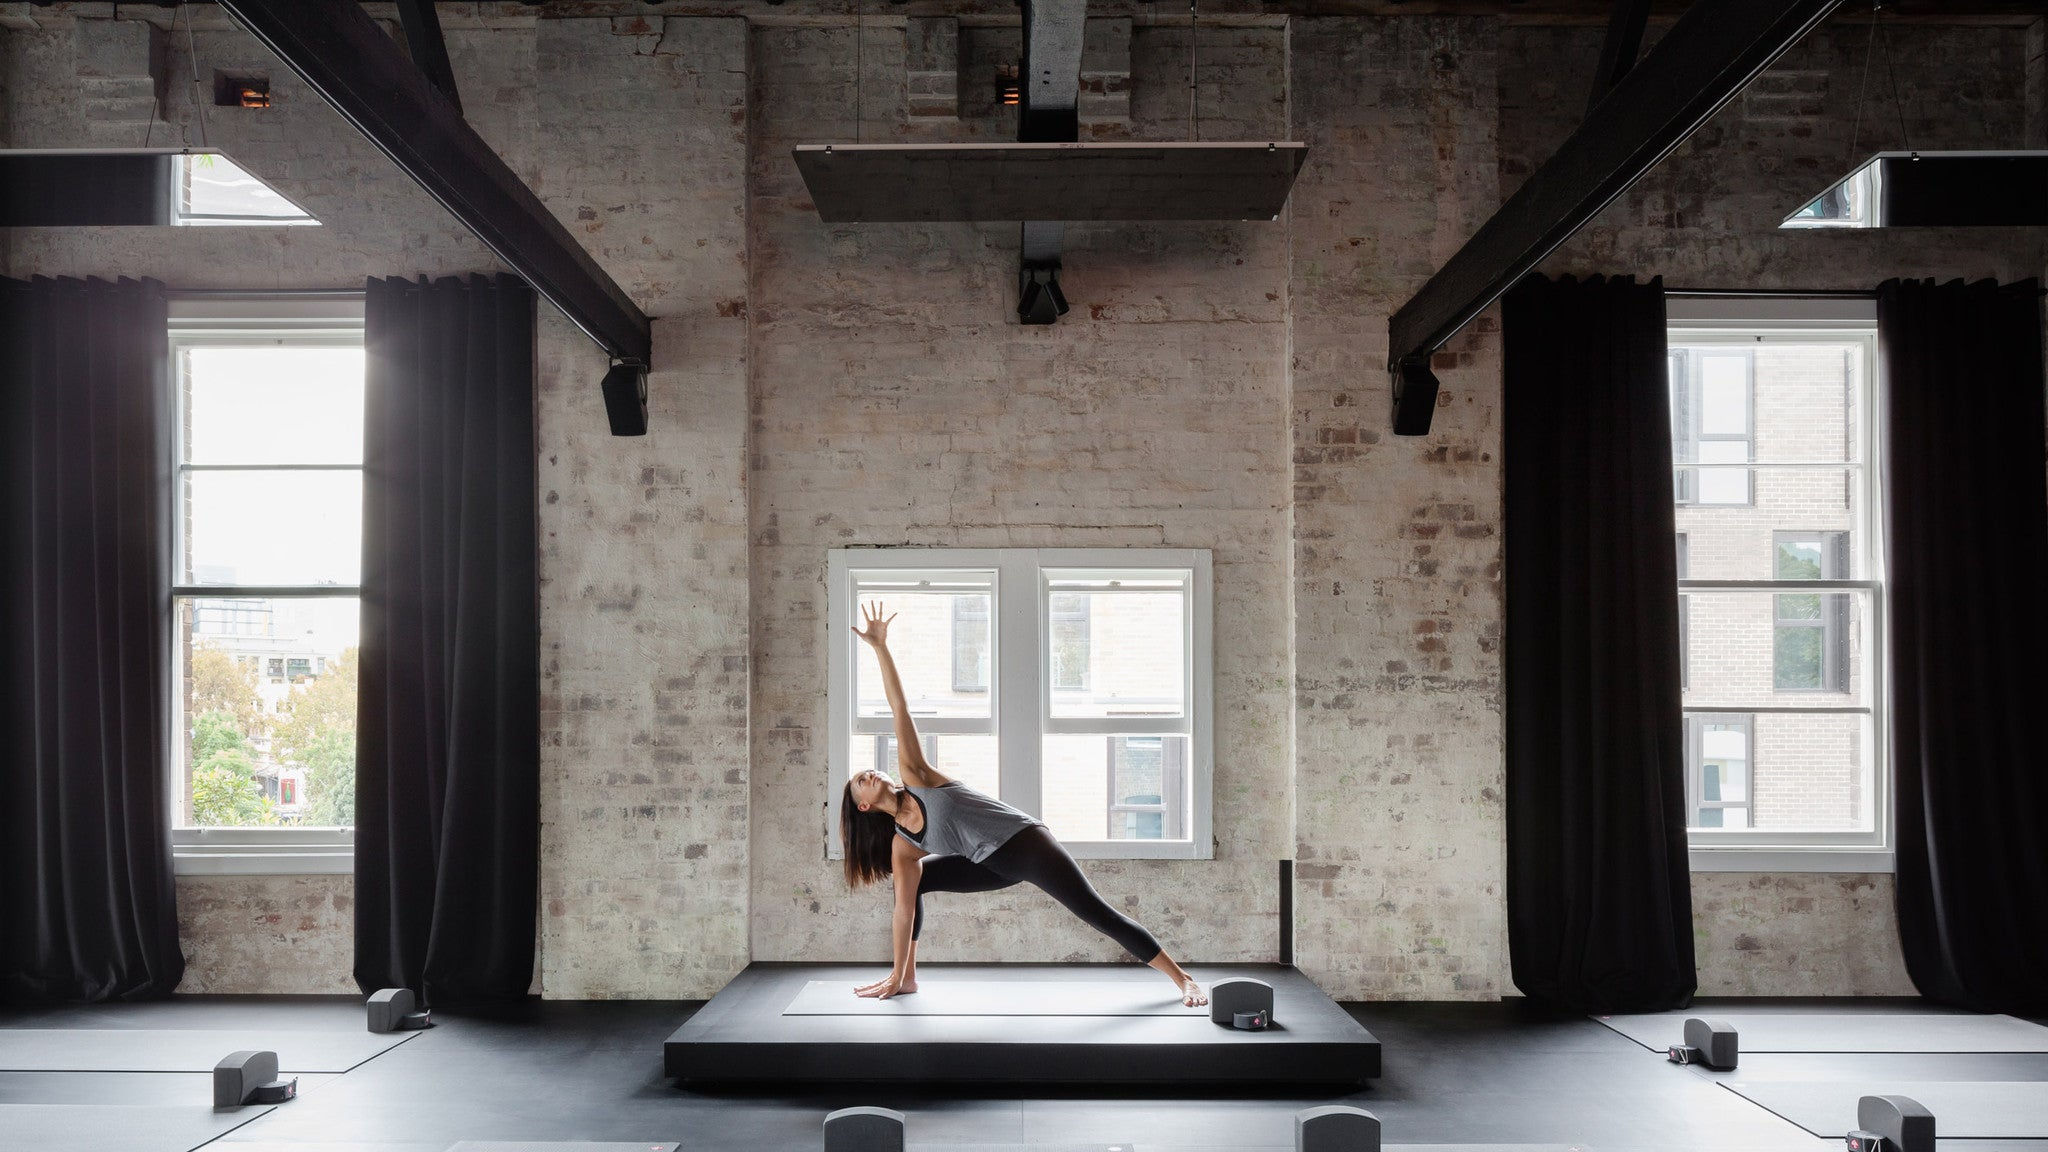 Even Though You Can Join A Yoga Studio, The Trend Of Creating Your Own Yoga  Room At Home Is Increasing On A Daily Basis. People Are Turning Their  Living ...